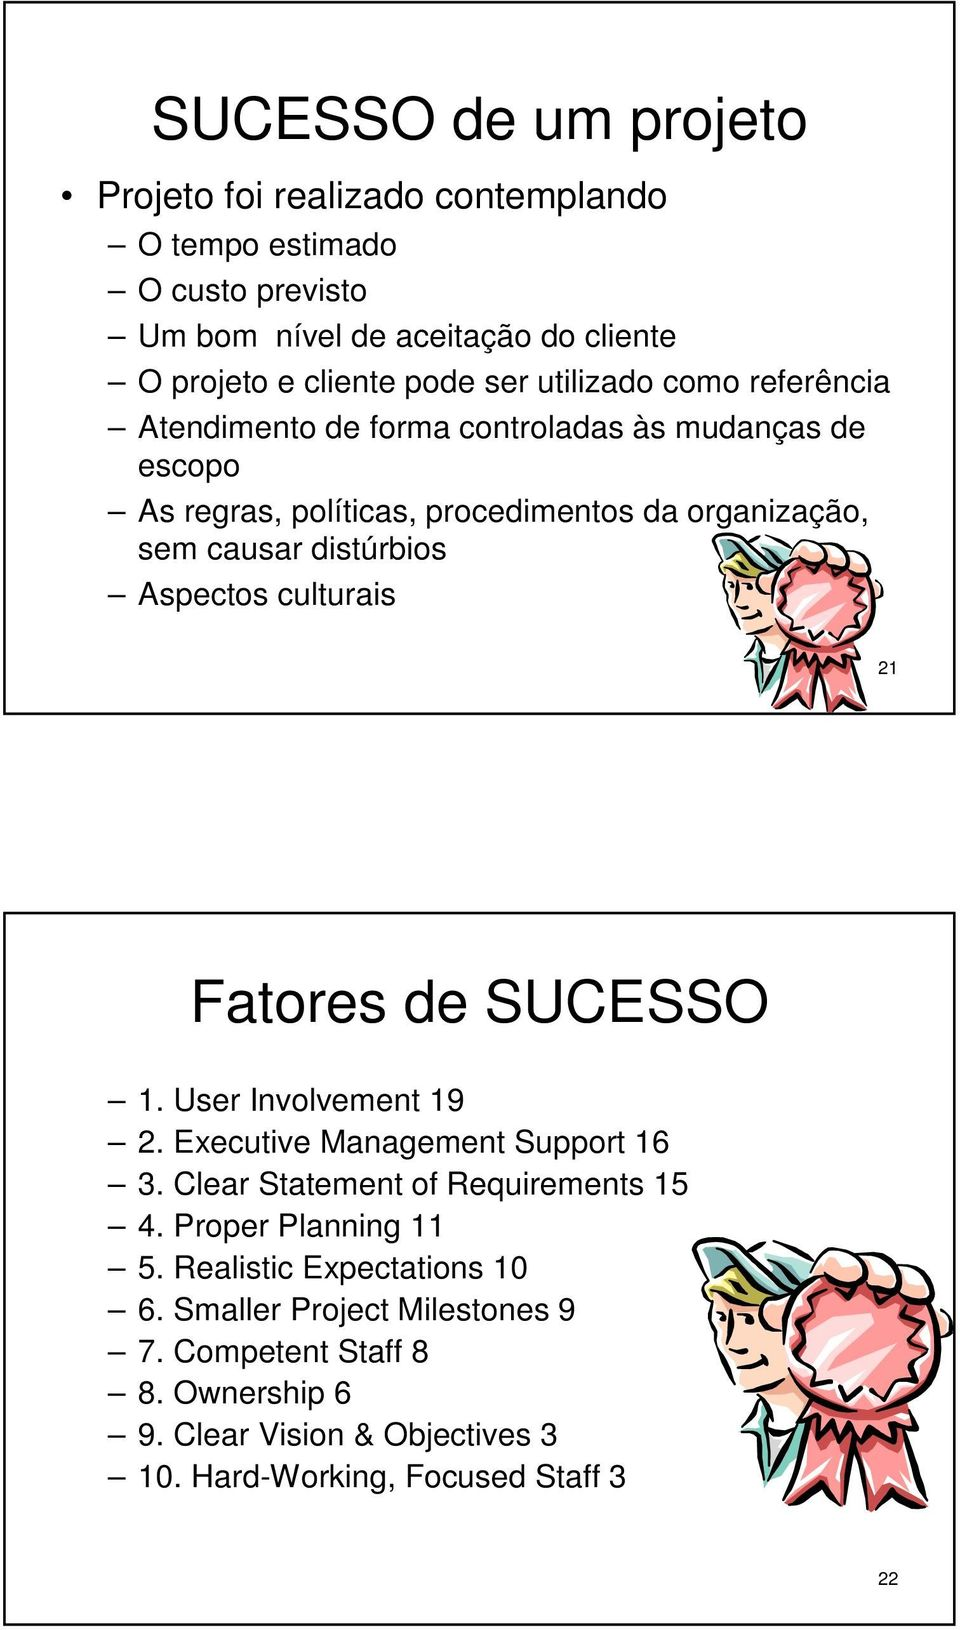 Aspectos culturais 21 Fatores de SUCESSO 1. User Involvement 19 2. Executive Management Support 16 3. Clear Statement of Requirements 15 4.